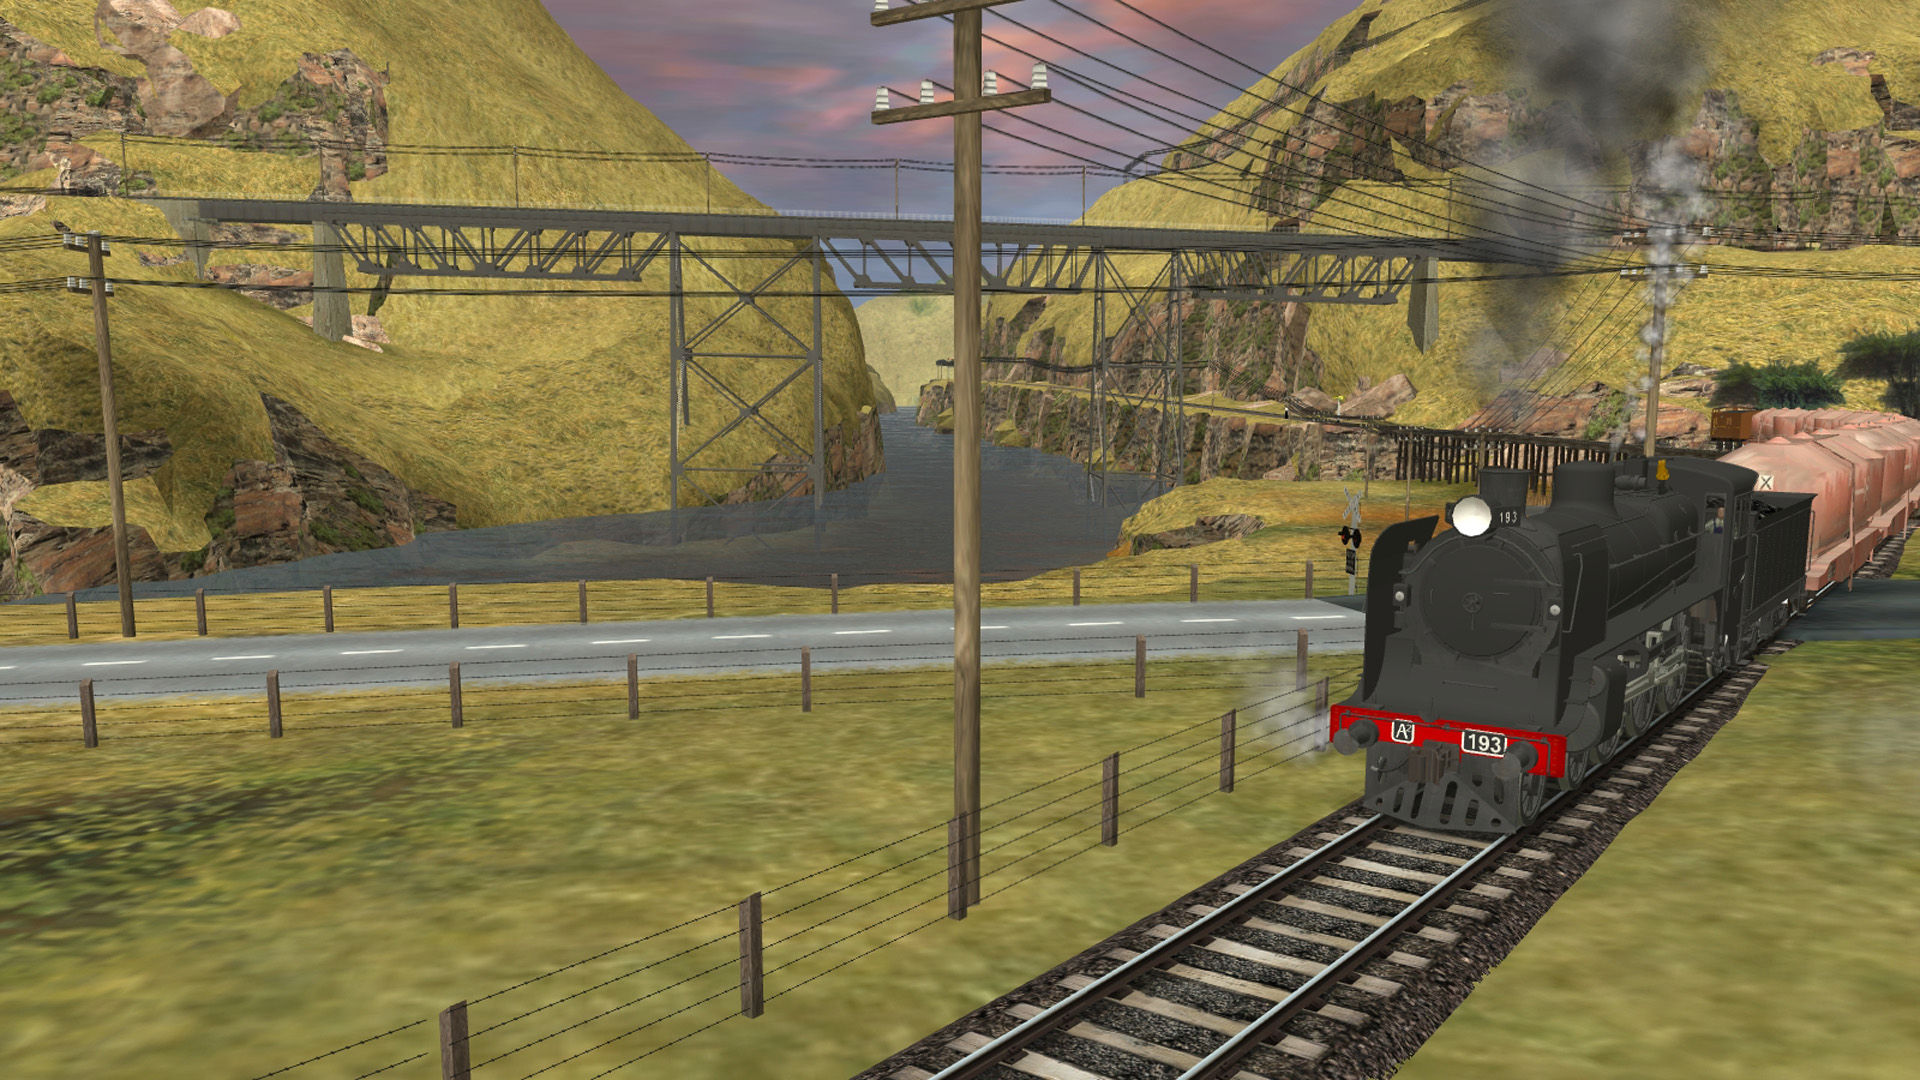 Trainz: Murchison 2 on Steam